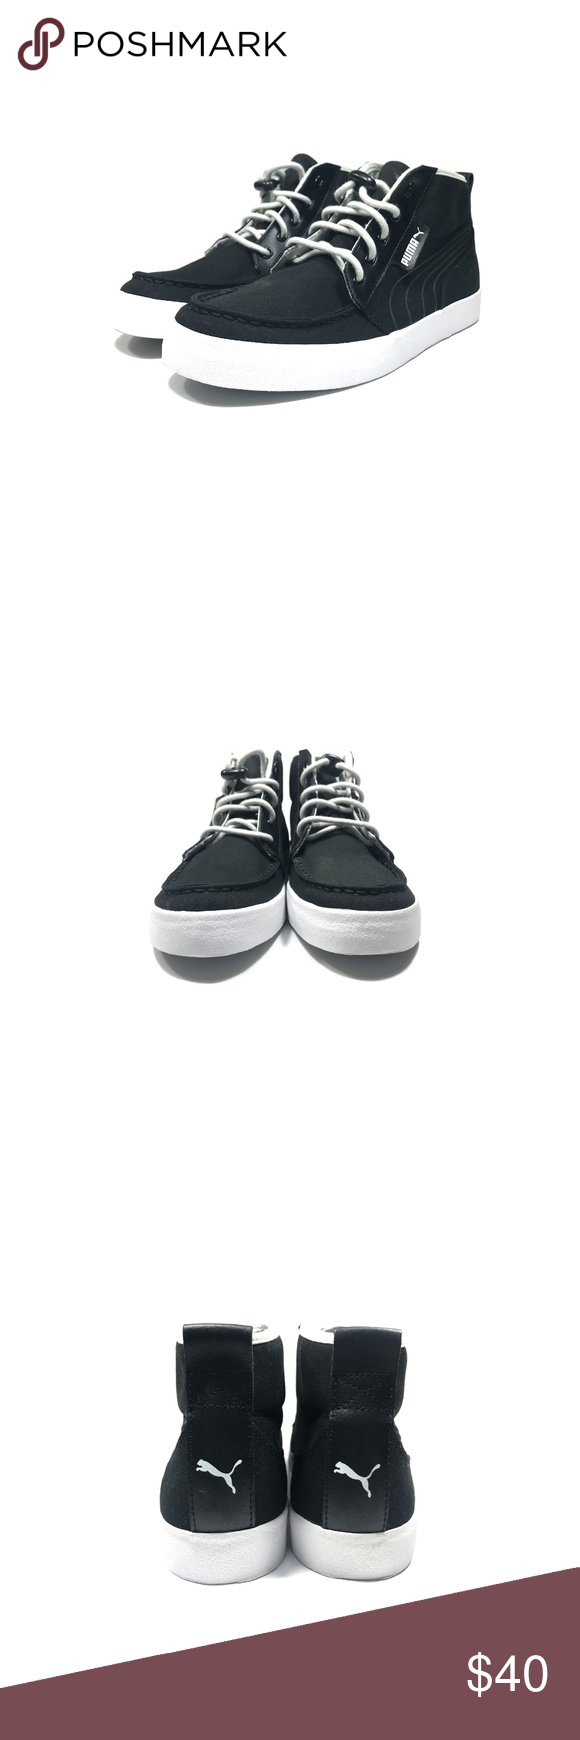 c8ef3b3fcb4a Men s Puma Canvas Sneakers Black White Size 8 1 2 - New - Color  Black Gray  White - Size  8 1 2 - Does not include original box - 100% Authentic  Guaranteed ...